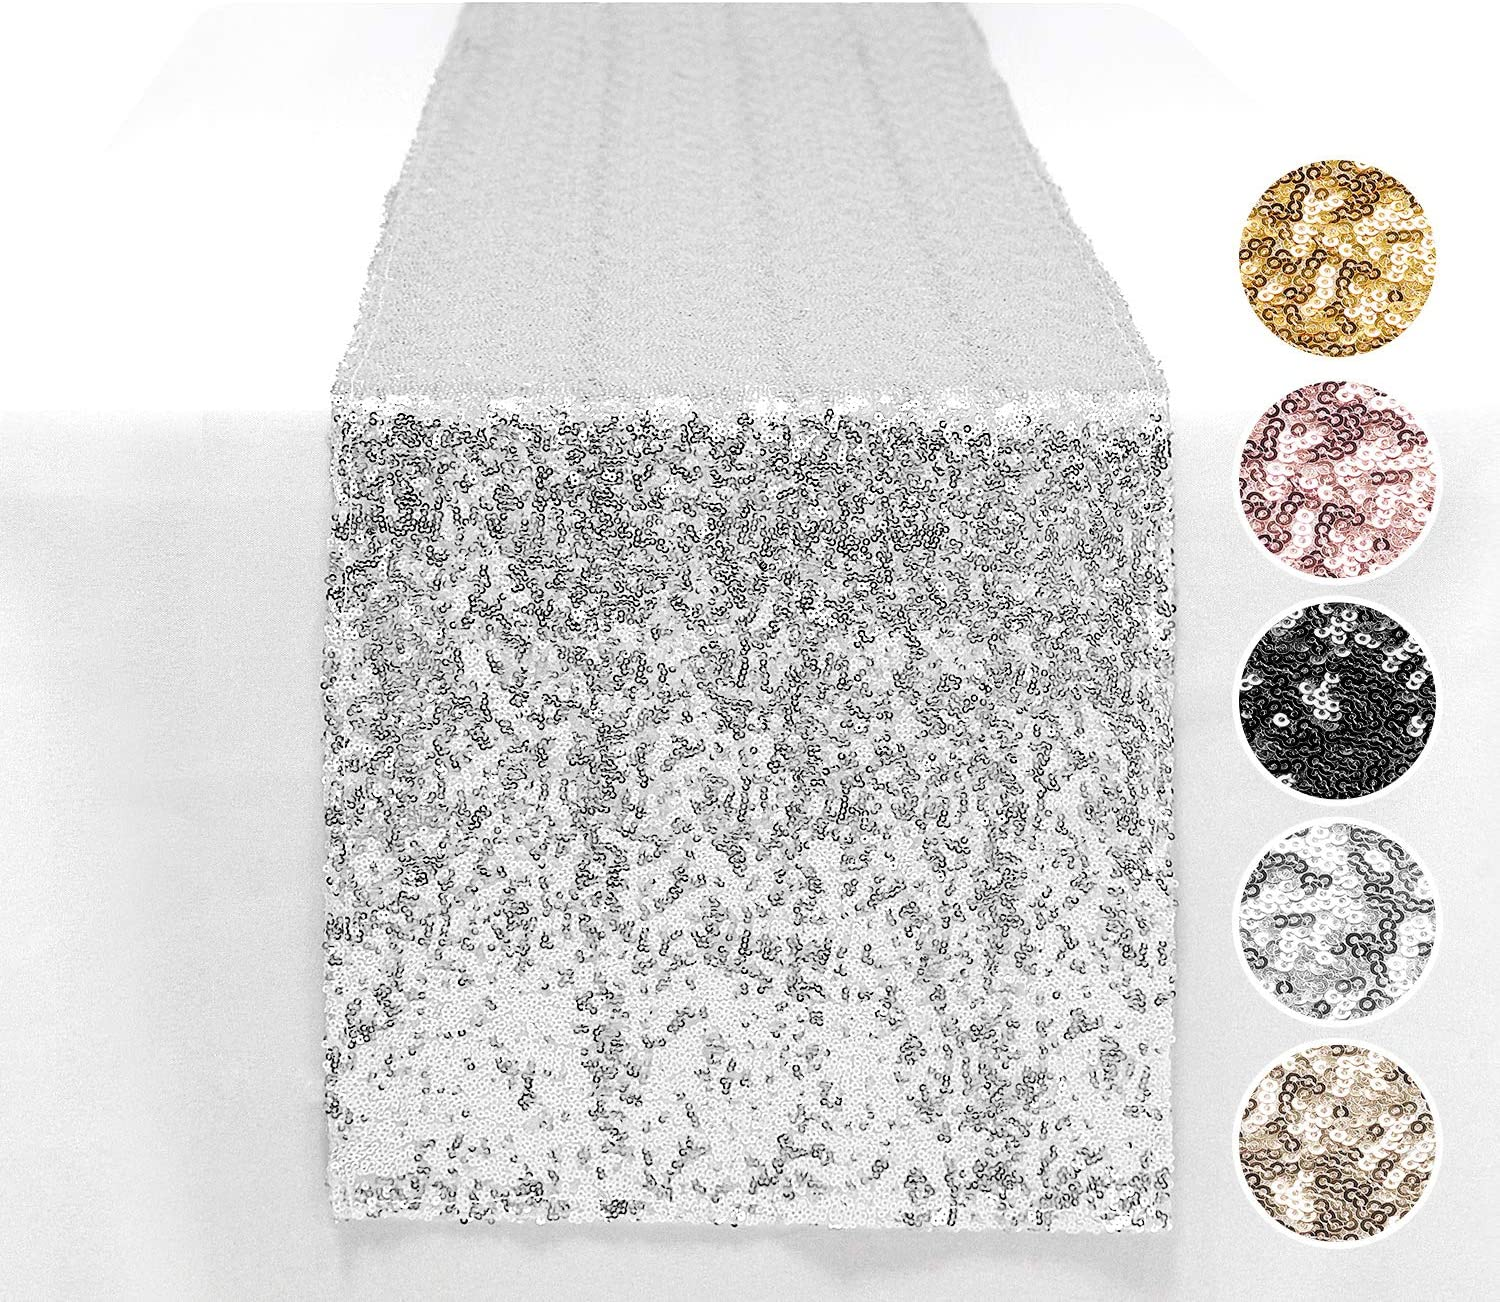 Peomeise 6PCS 12x108 Inch Sequin unisex Table Event Party De Runner Raleigh Mall for